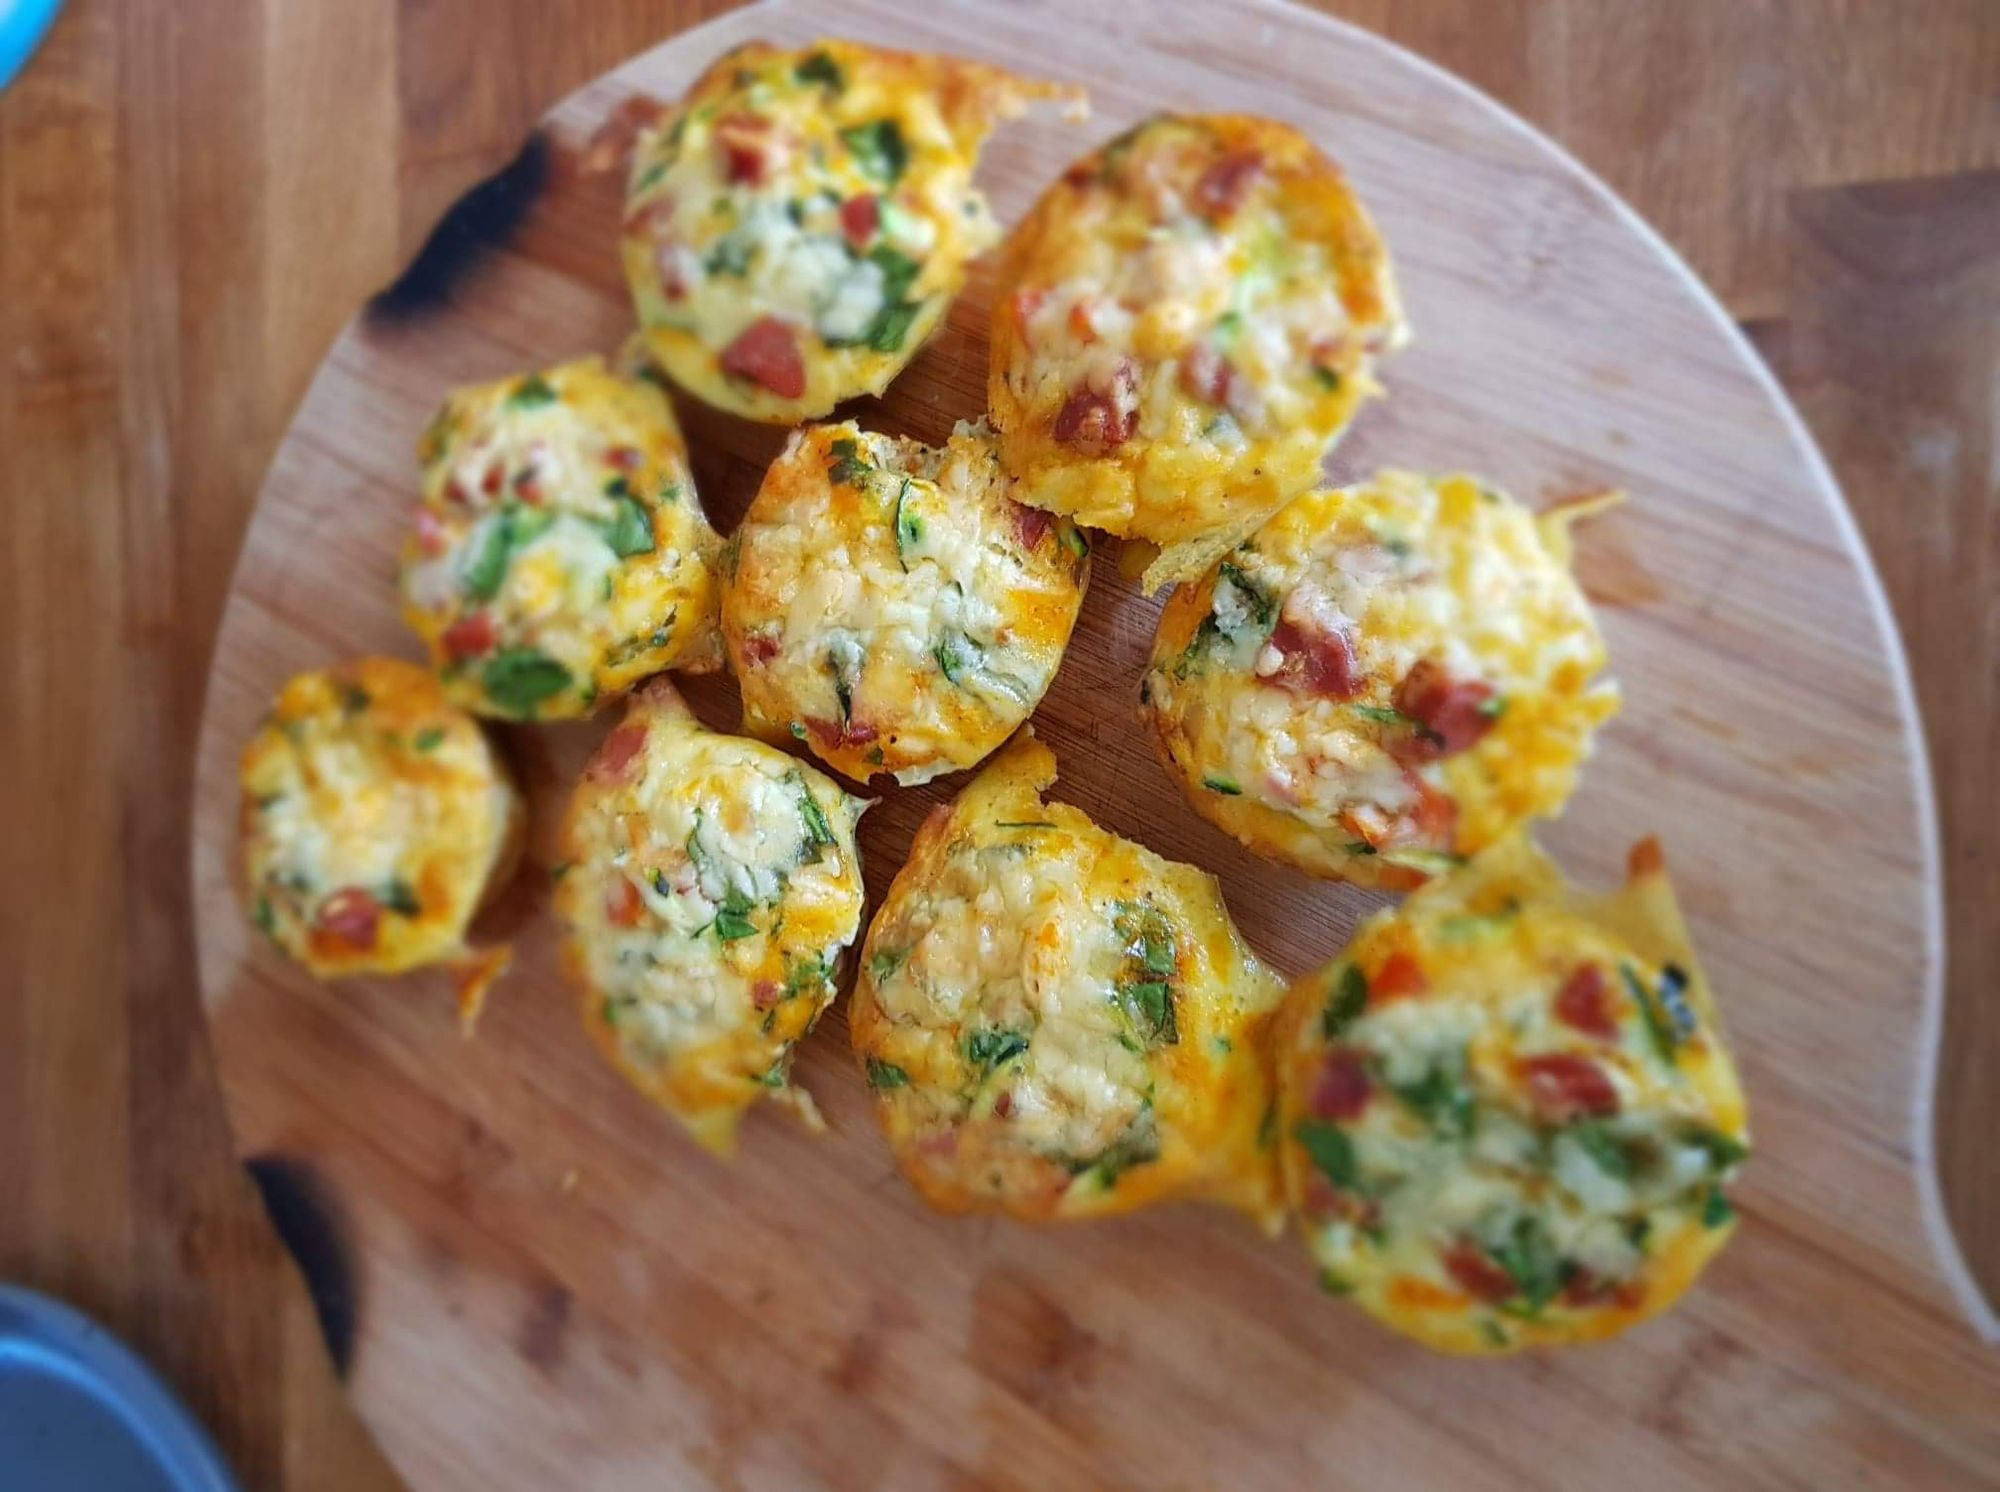 Food for your mood: egg muffins